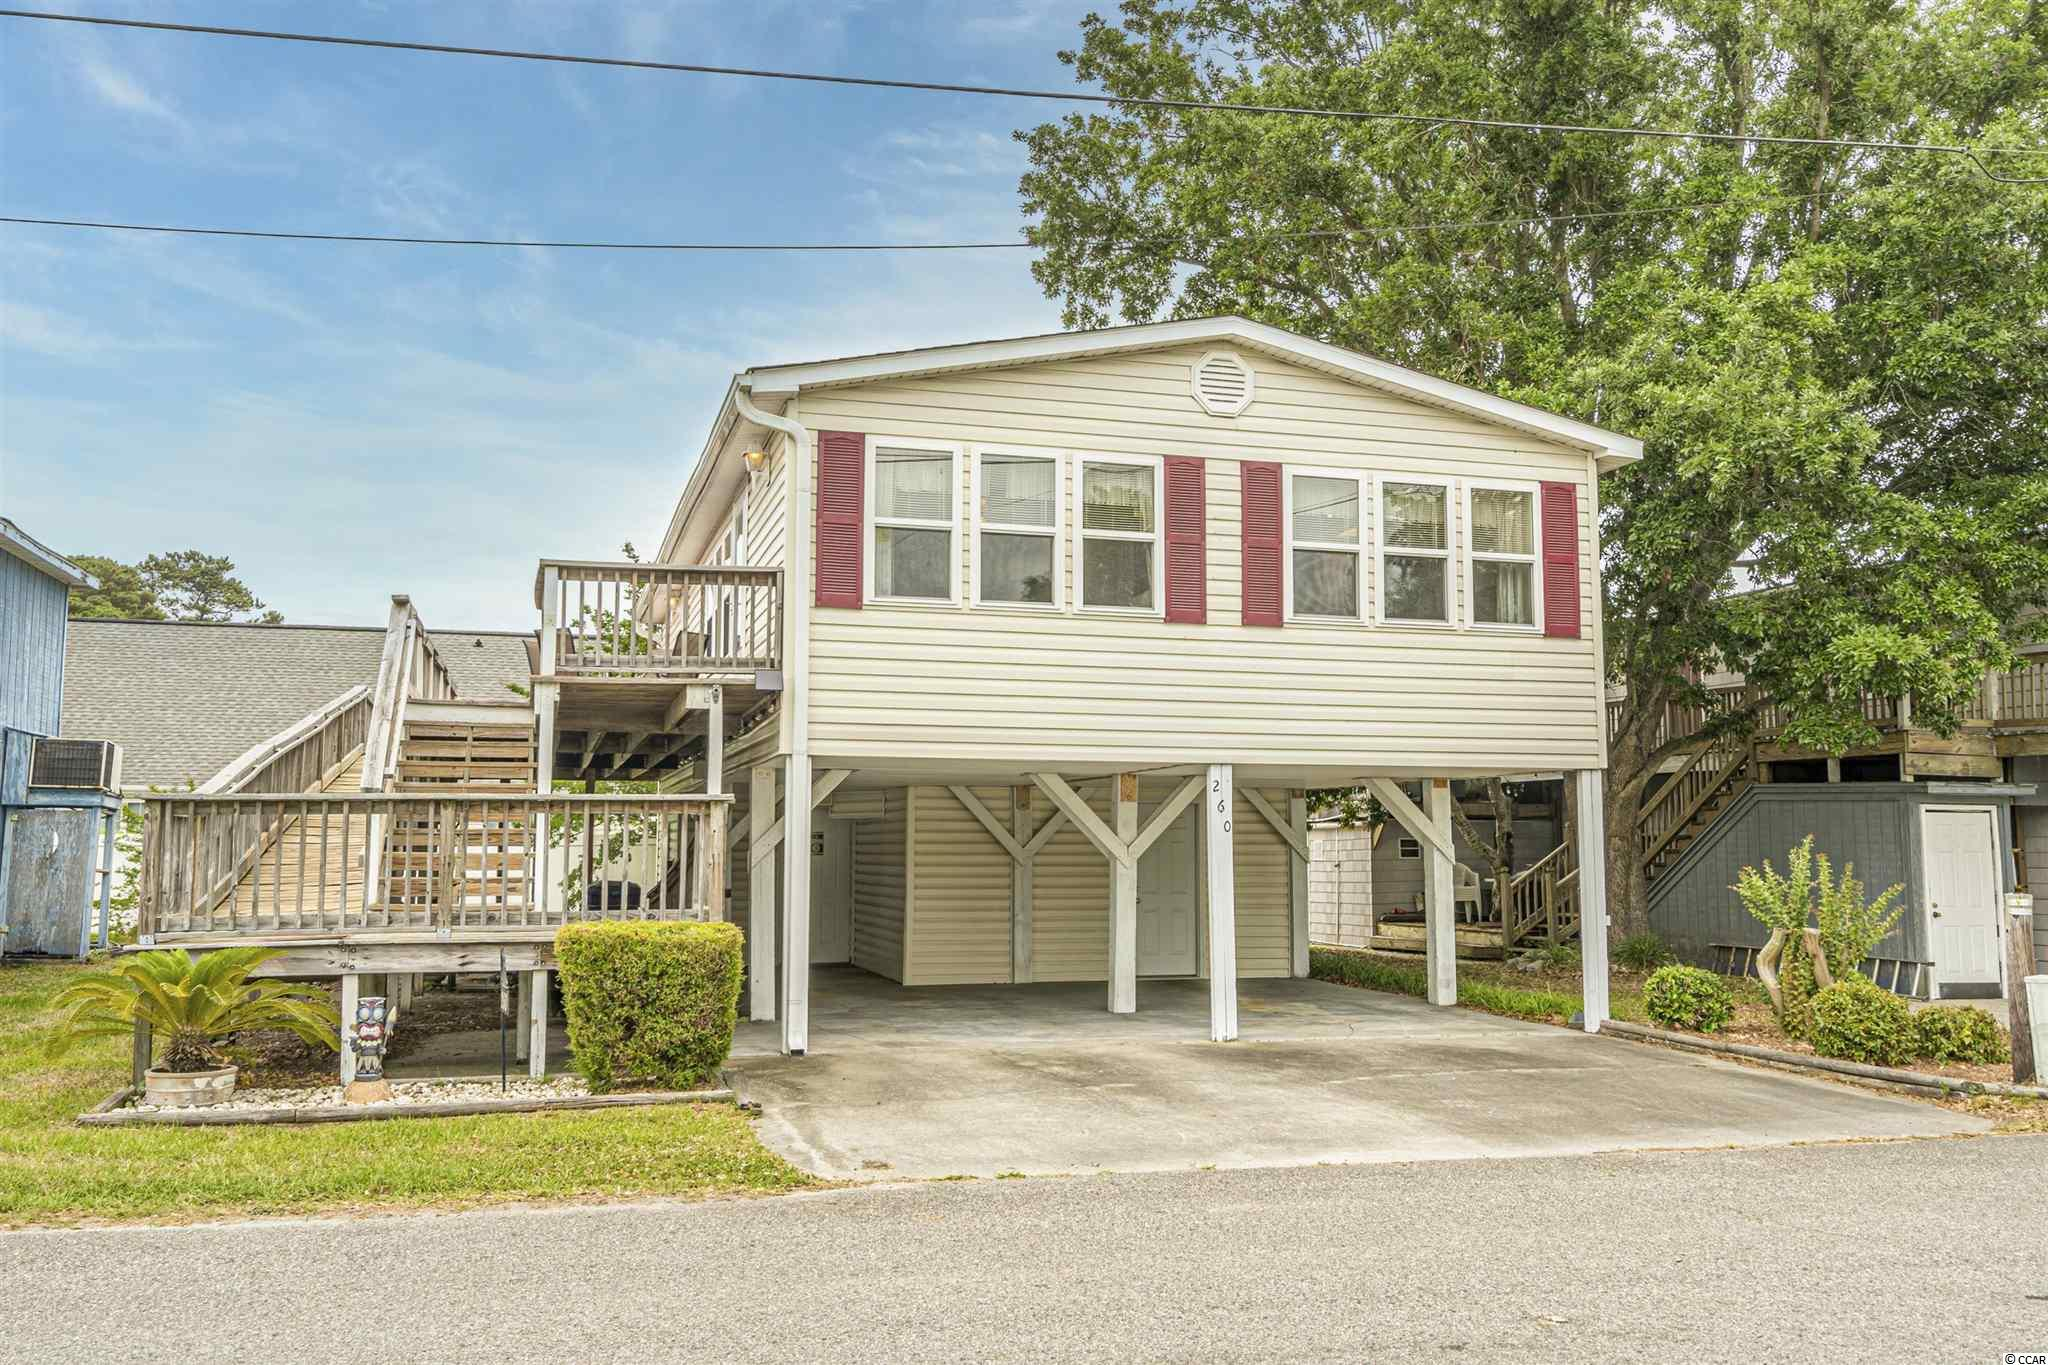 Enjoy easy living in this beautifully maintained beach home located in a gated, oceanfront community in Surfside Beach. As soon as you enter the home you will be pleasantly surprised by the spacious interior that flows effortlessly throughout the main living/dining areas. This open layout is ideal for entertaining guests and/or vacationing comfortably with larger groups. The eat-in kitchen has a breakfast bar with seating for two, quality like-New appliances, and comes complete with all kitchen essentials. The bedrooms are cleverly concealed in the rear of the home allowing for privacy away from the main areas. Outside you will find a huge deck with an outdoor dining table and plenty of space to lounge with a good book or relax and soak up the sun. The underneath of the home has a large storage unit for all the extras. Established Turn-Key weekly rental home, offered fully furnished and tastefully decorated. Walking distance to the beach in the Oceanside Village community. Homeowners and their guests have access to resort-style amenities including indoor/outdoor pools, kiddie splash zone, tennis/basketball courts, dog park, playground, fitness center and private beach access with parking and an Oceanfront Restaurant. Schedule your showing today.